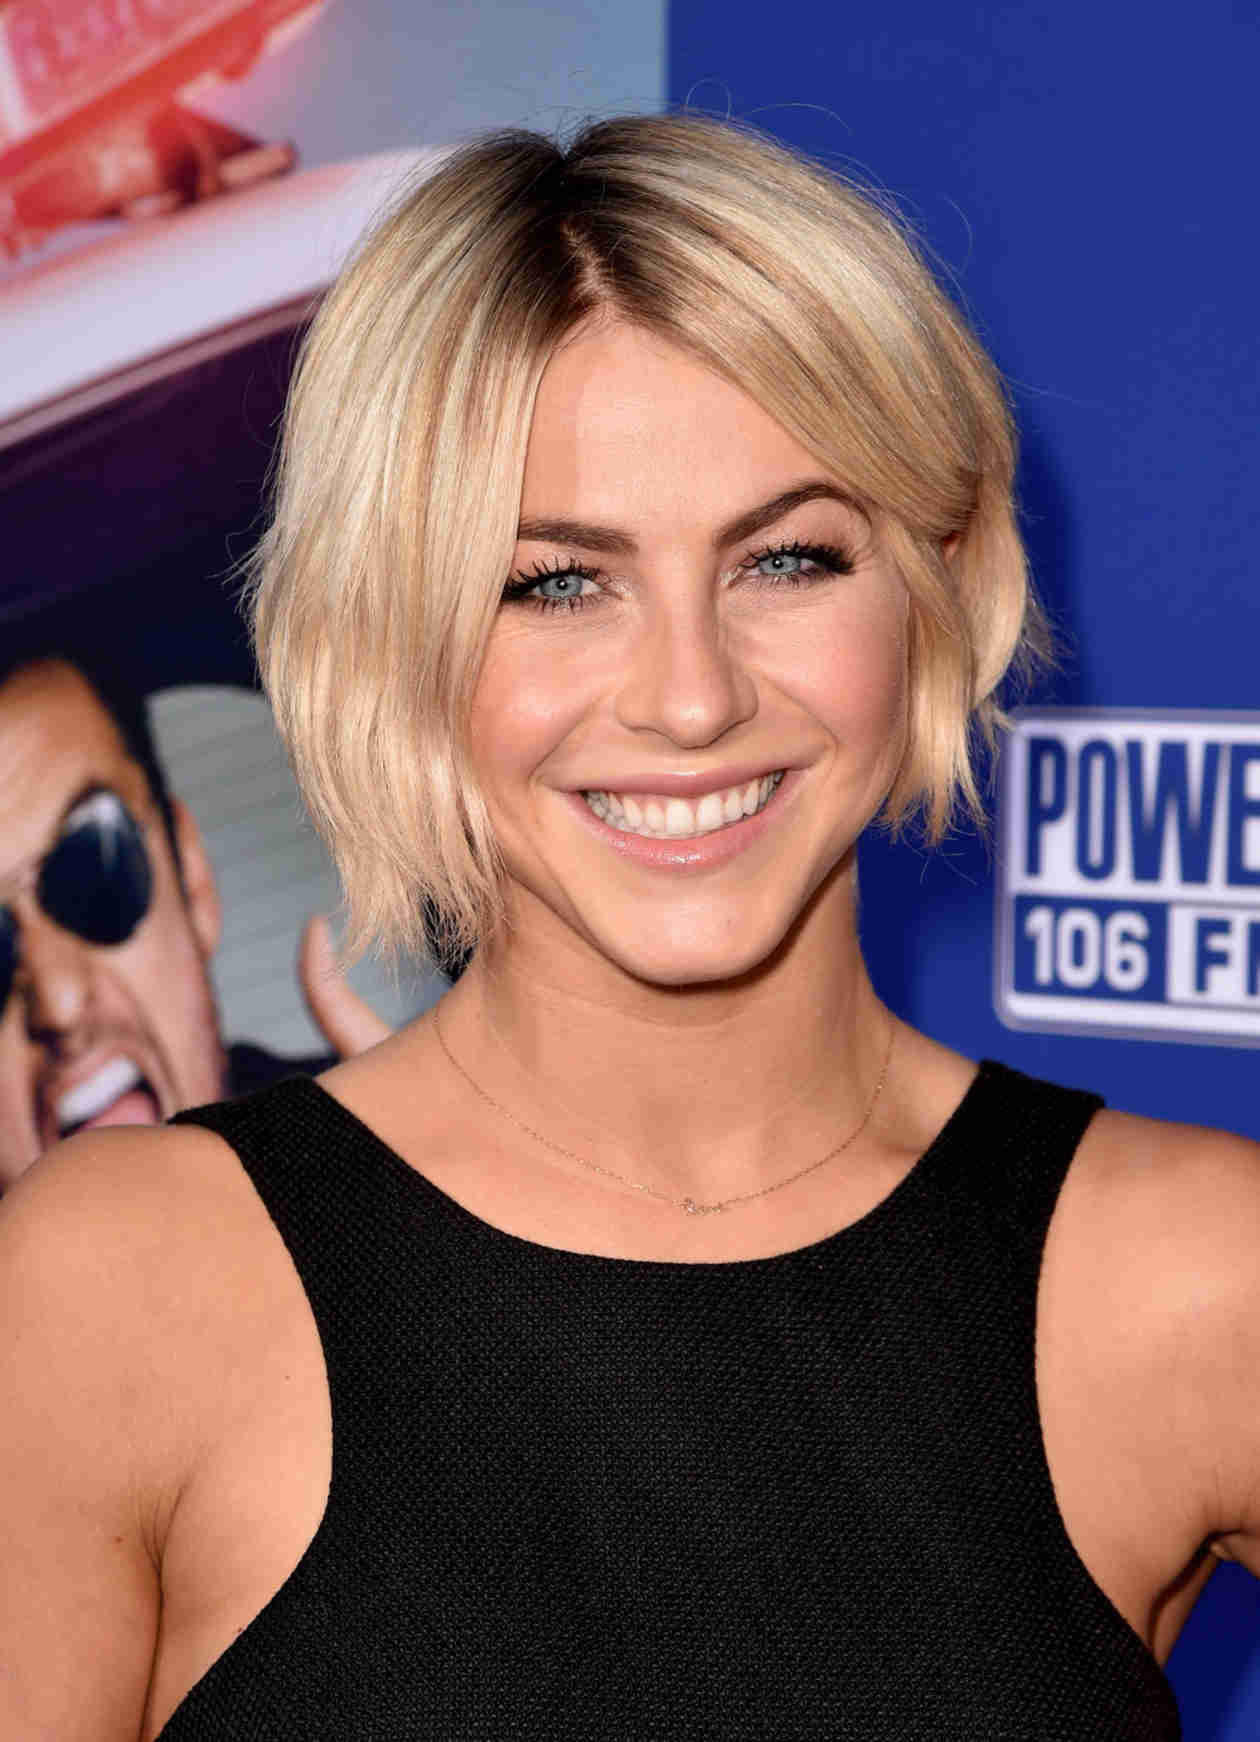 Julianne Hough Returns to Dancing With the Stars as a Judge: Are You Happy?